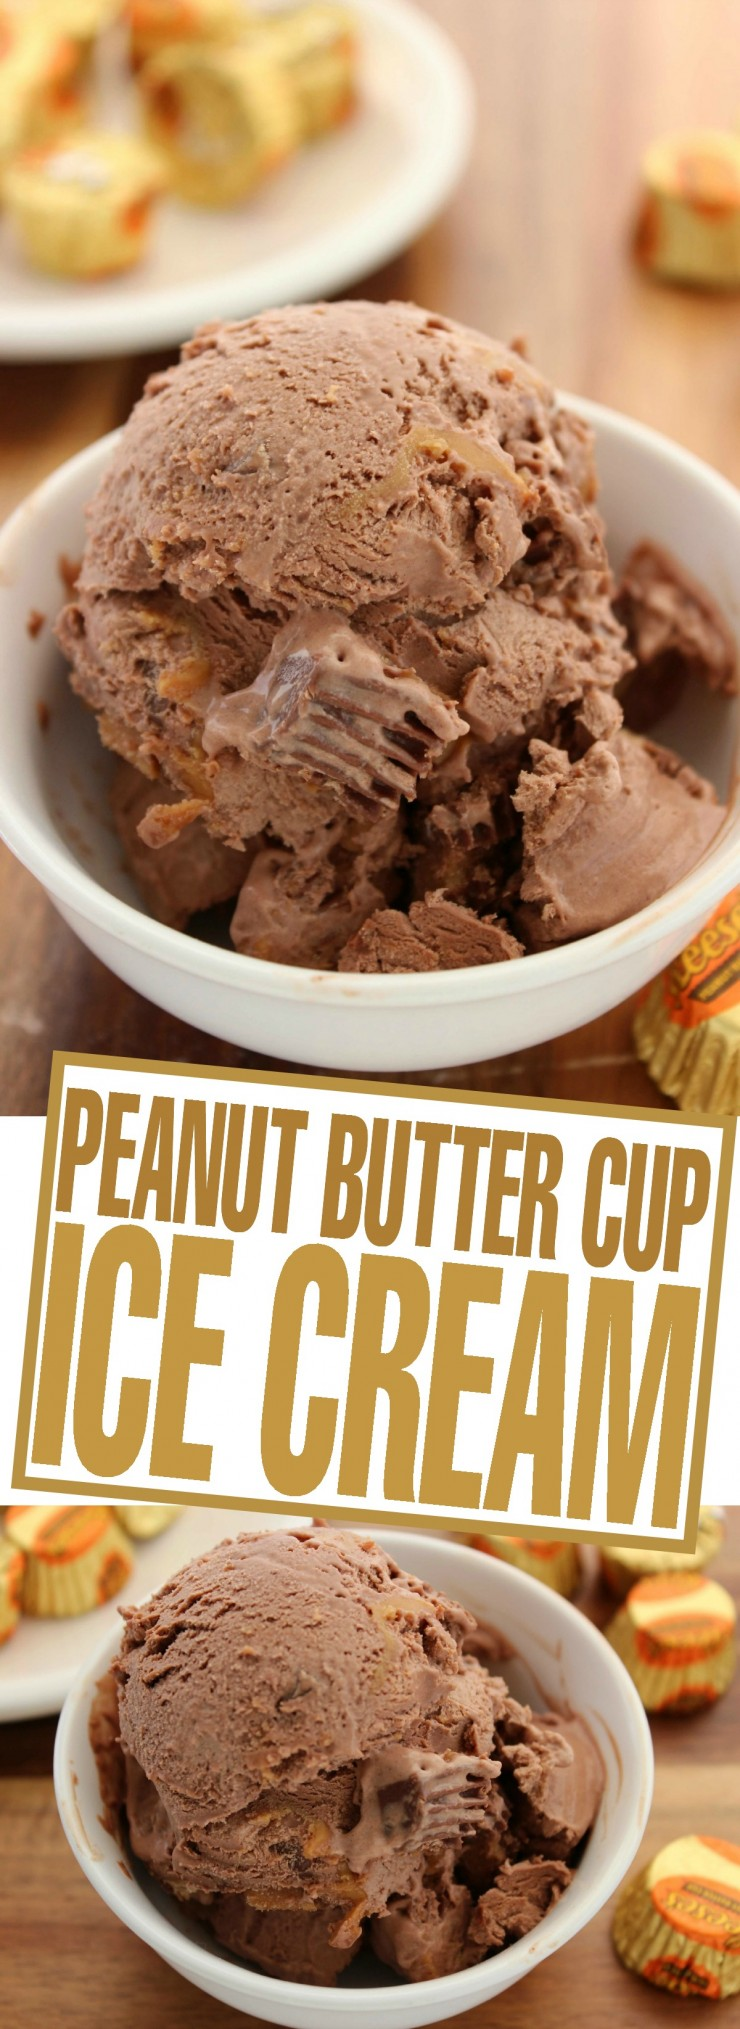 This Peanut Butter Cup Ice Cream is no-churn and deliciously decadent - a perfectly frozen summer dessert recipe.